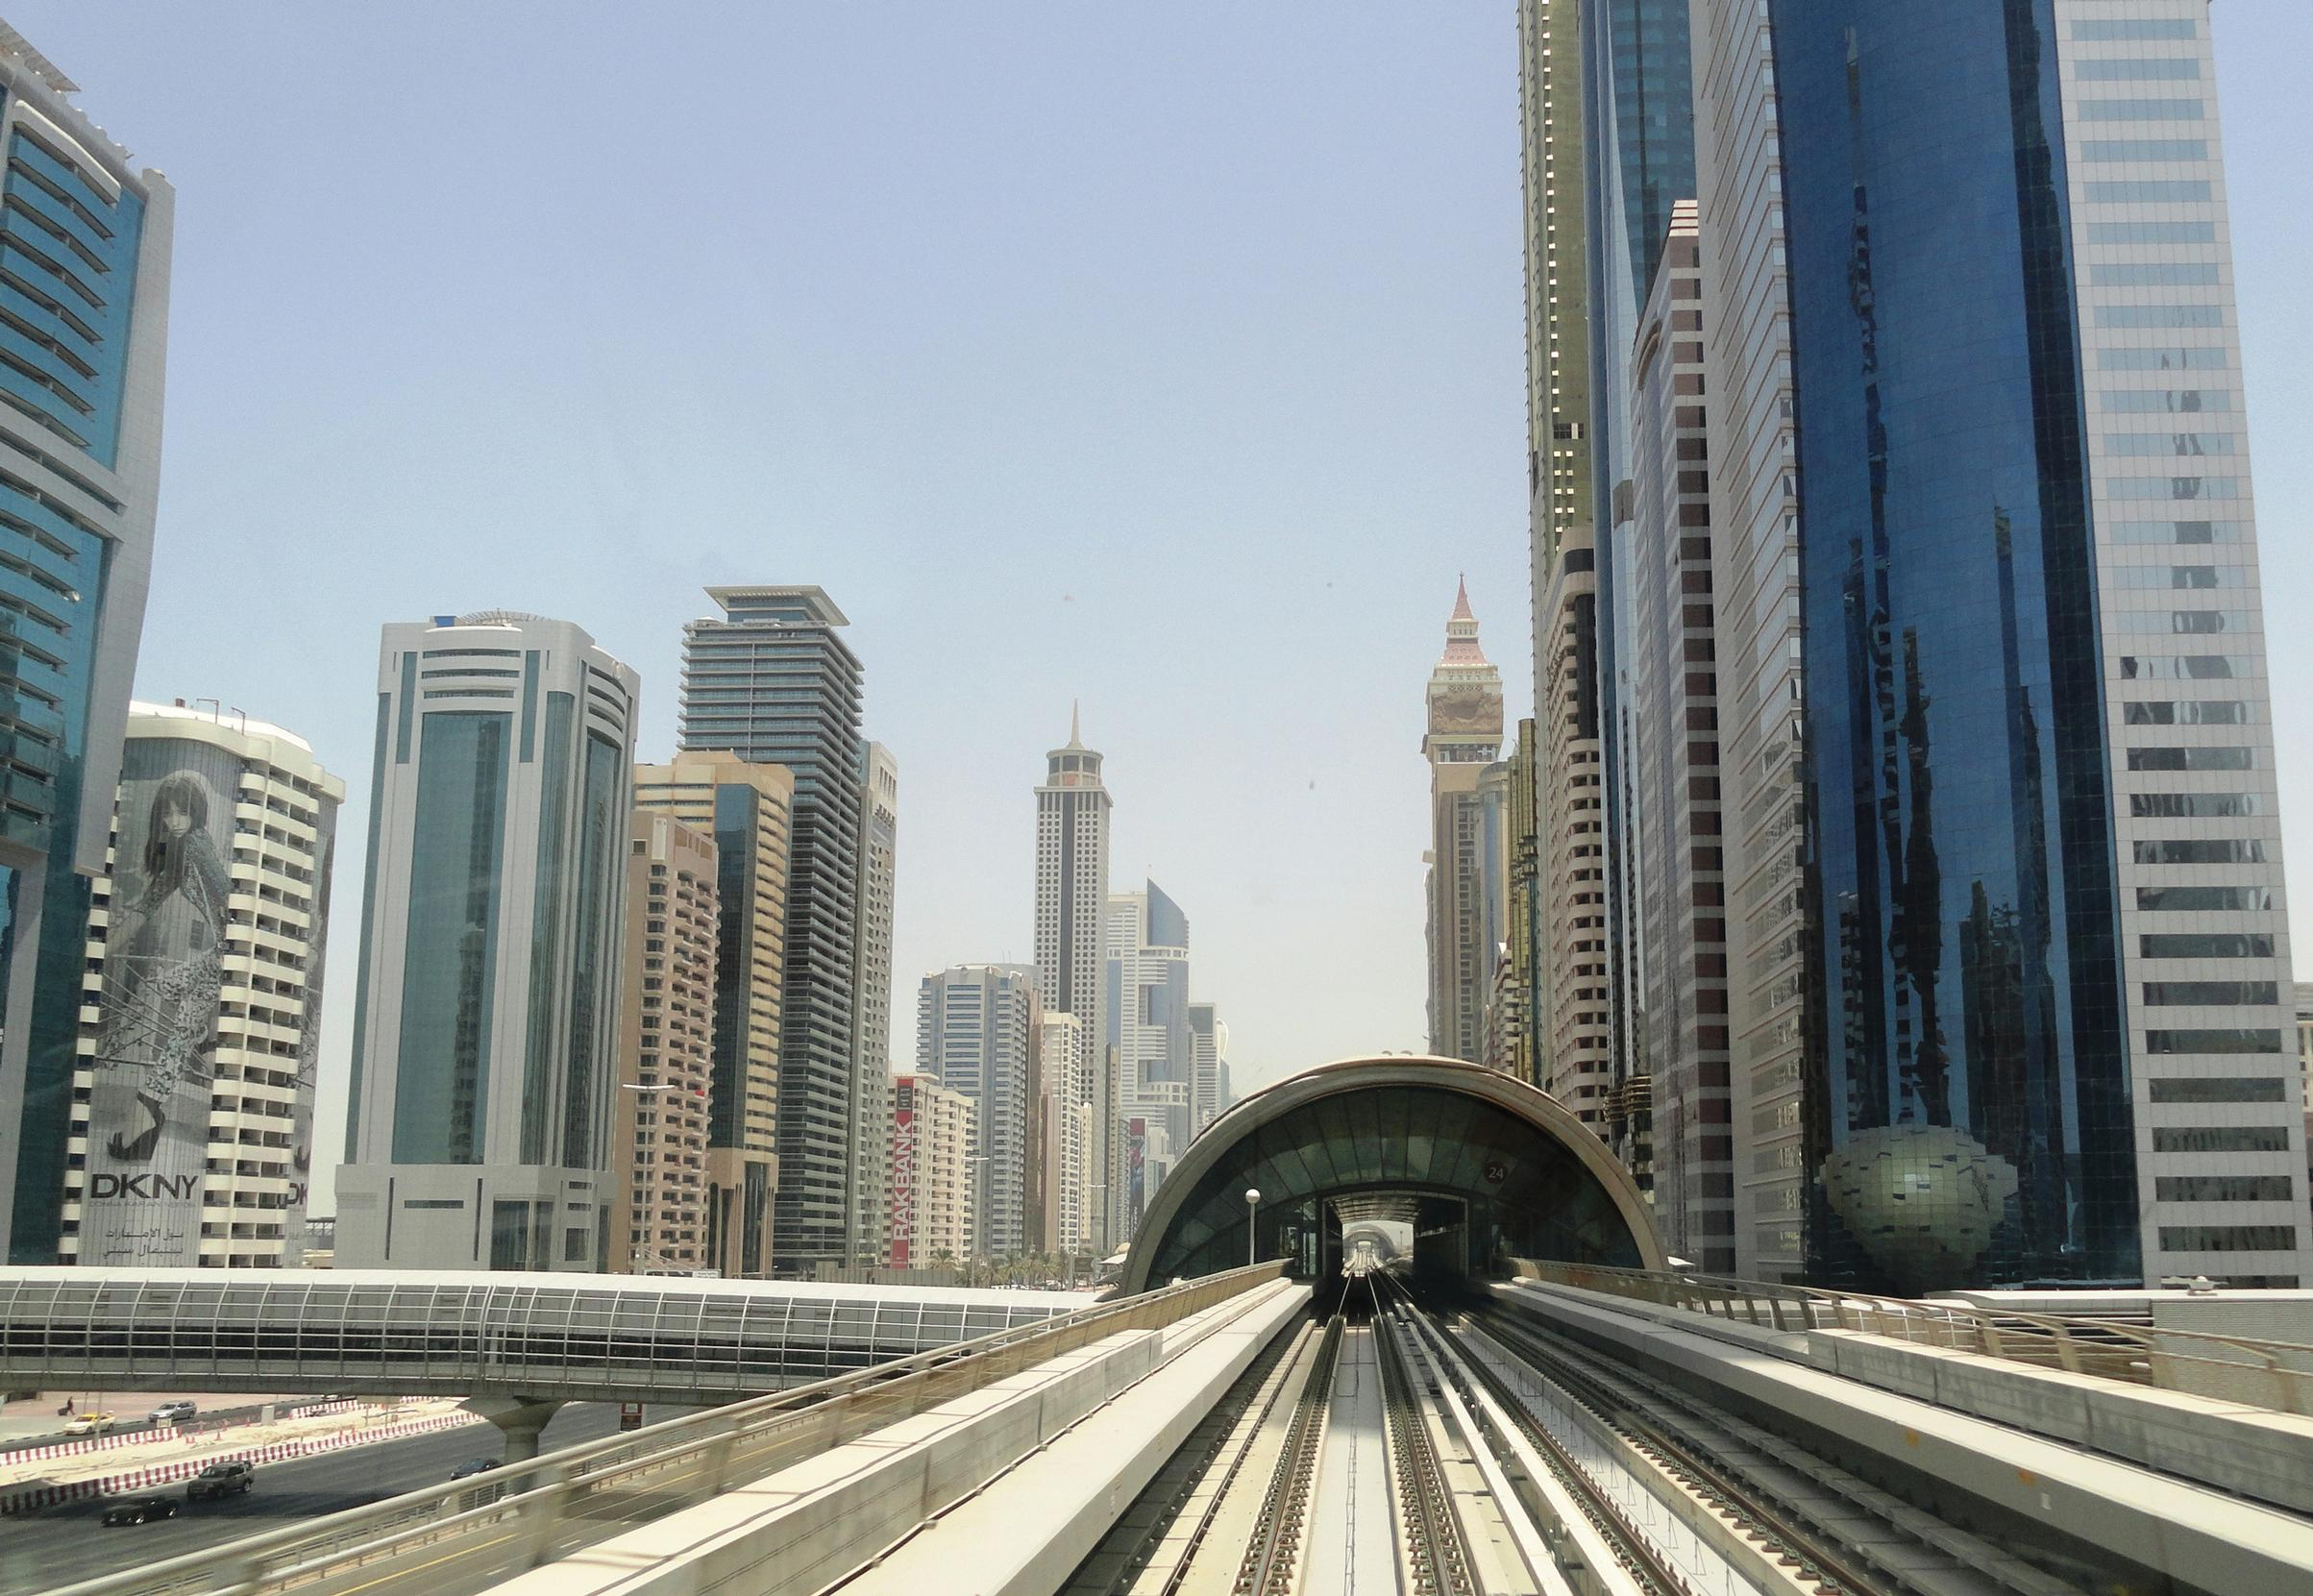 New modes are becoming popular in cities like Dubai and need to be acounted for in the modelling mix. Image courtesy: Fabio Achilli– Dubai Metro, Sheikh Zayed Road, Dubai